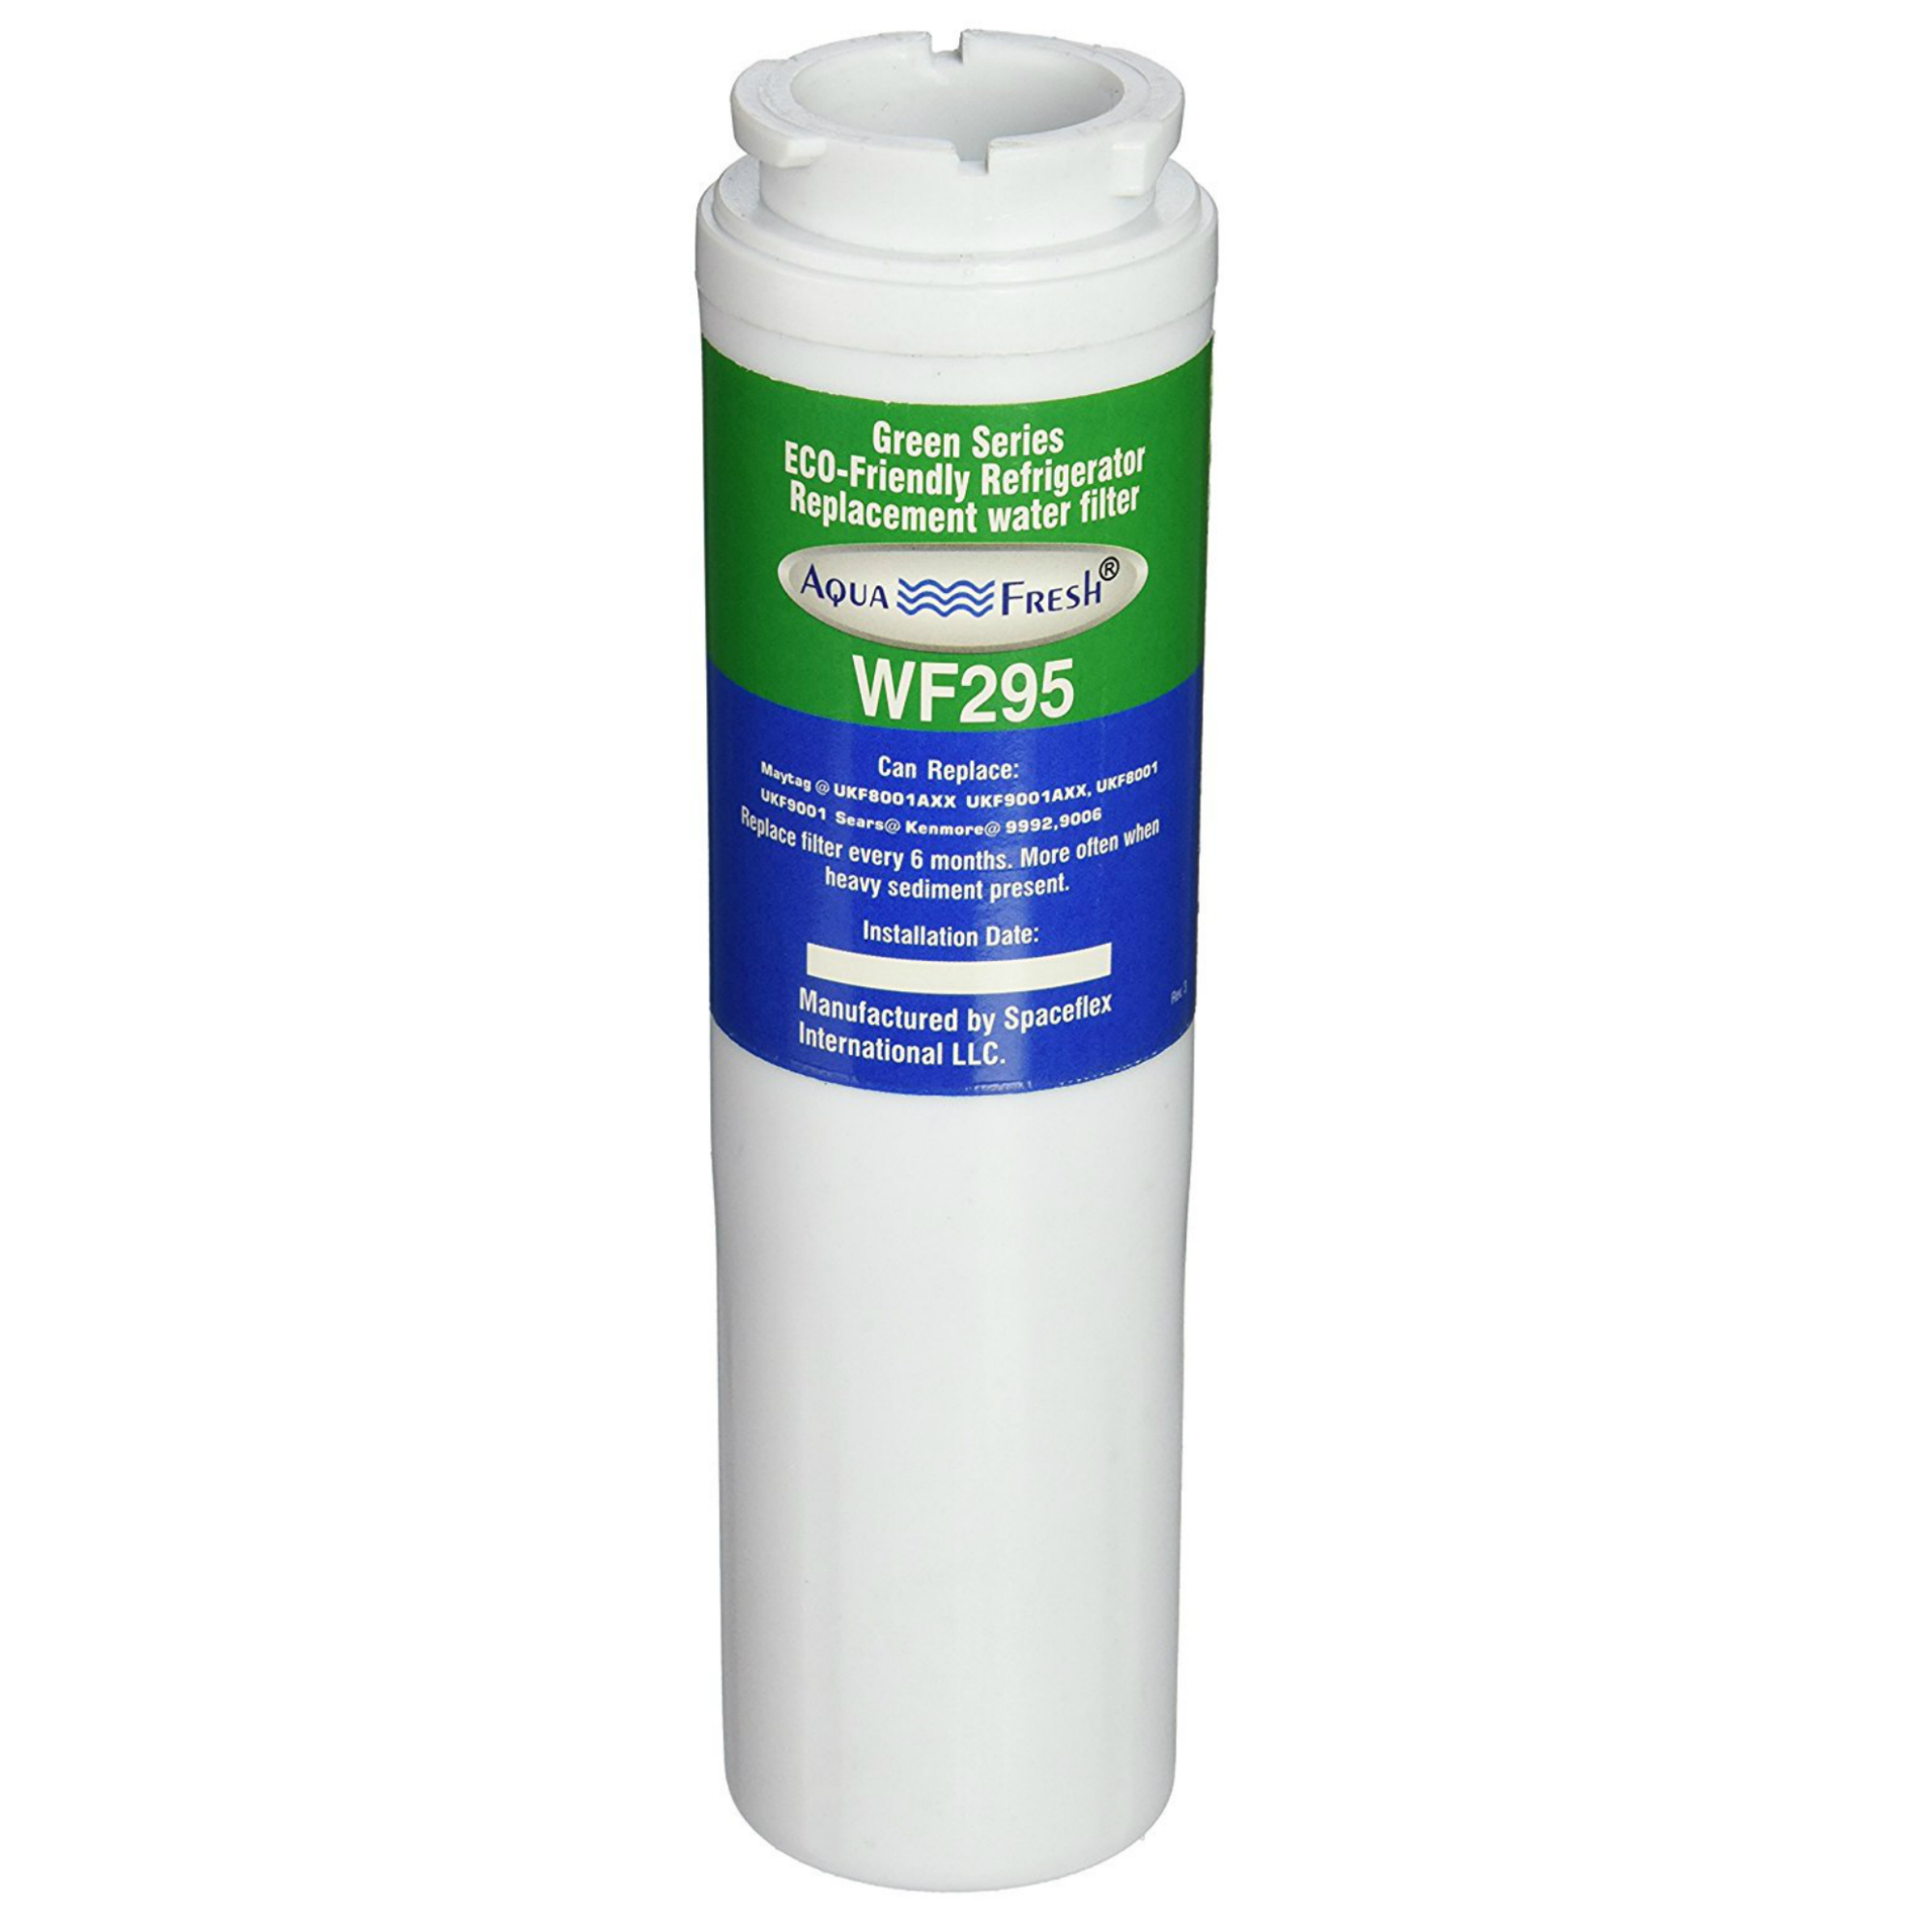 Amana ABR2037FES Refrigerator Water Filter Replacement Bu2026